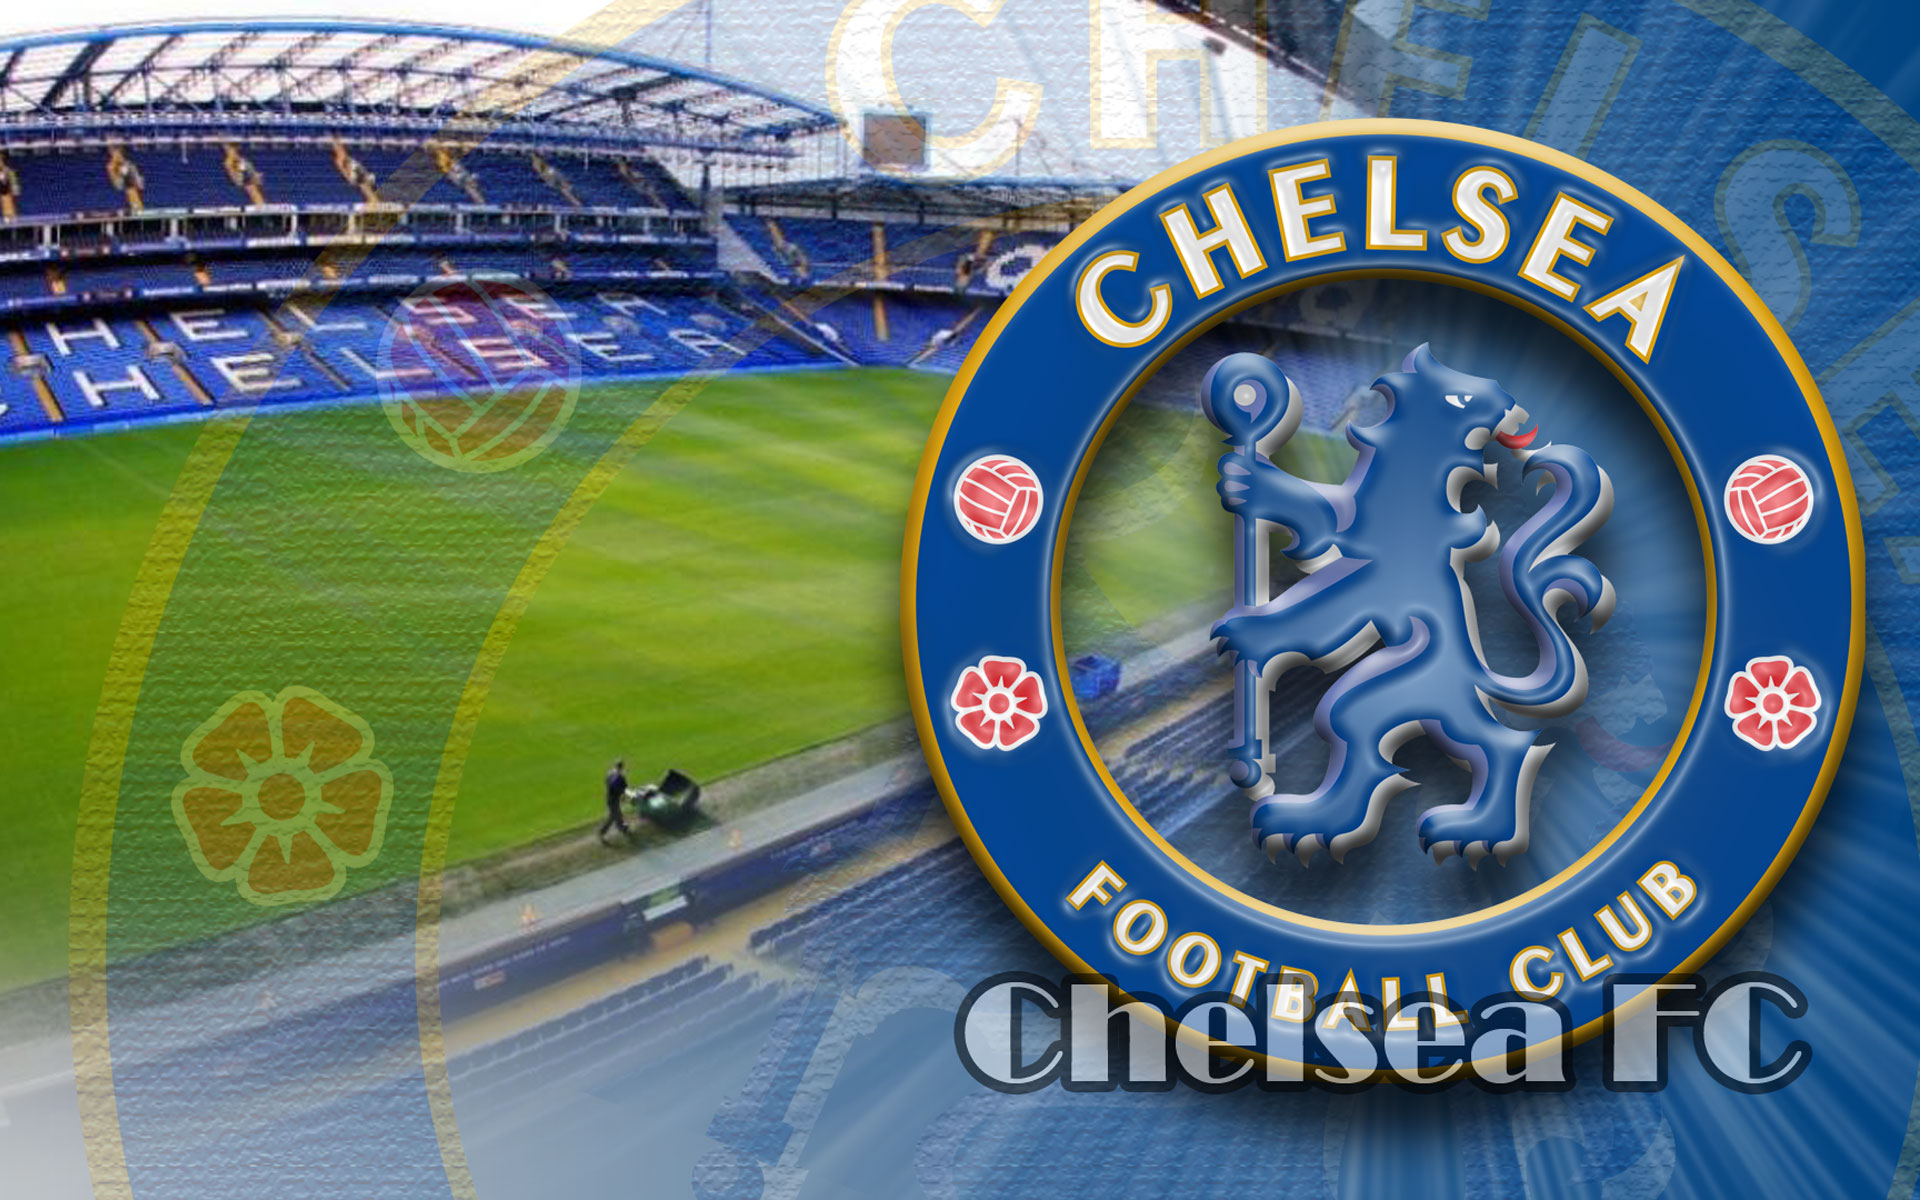 Description Download Chelsea FC HD Widescreen Wallpaper